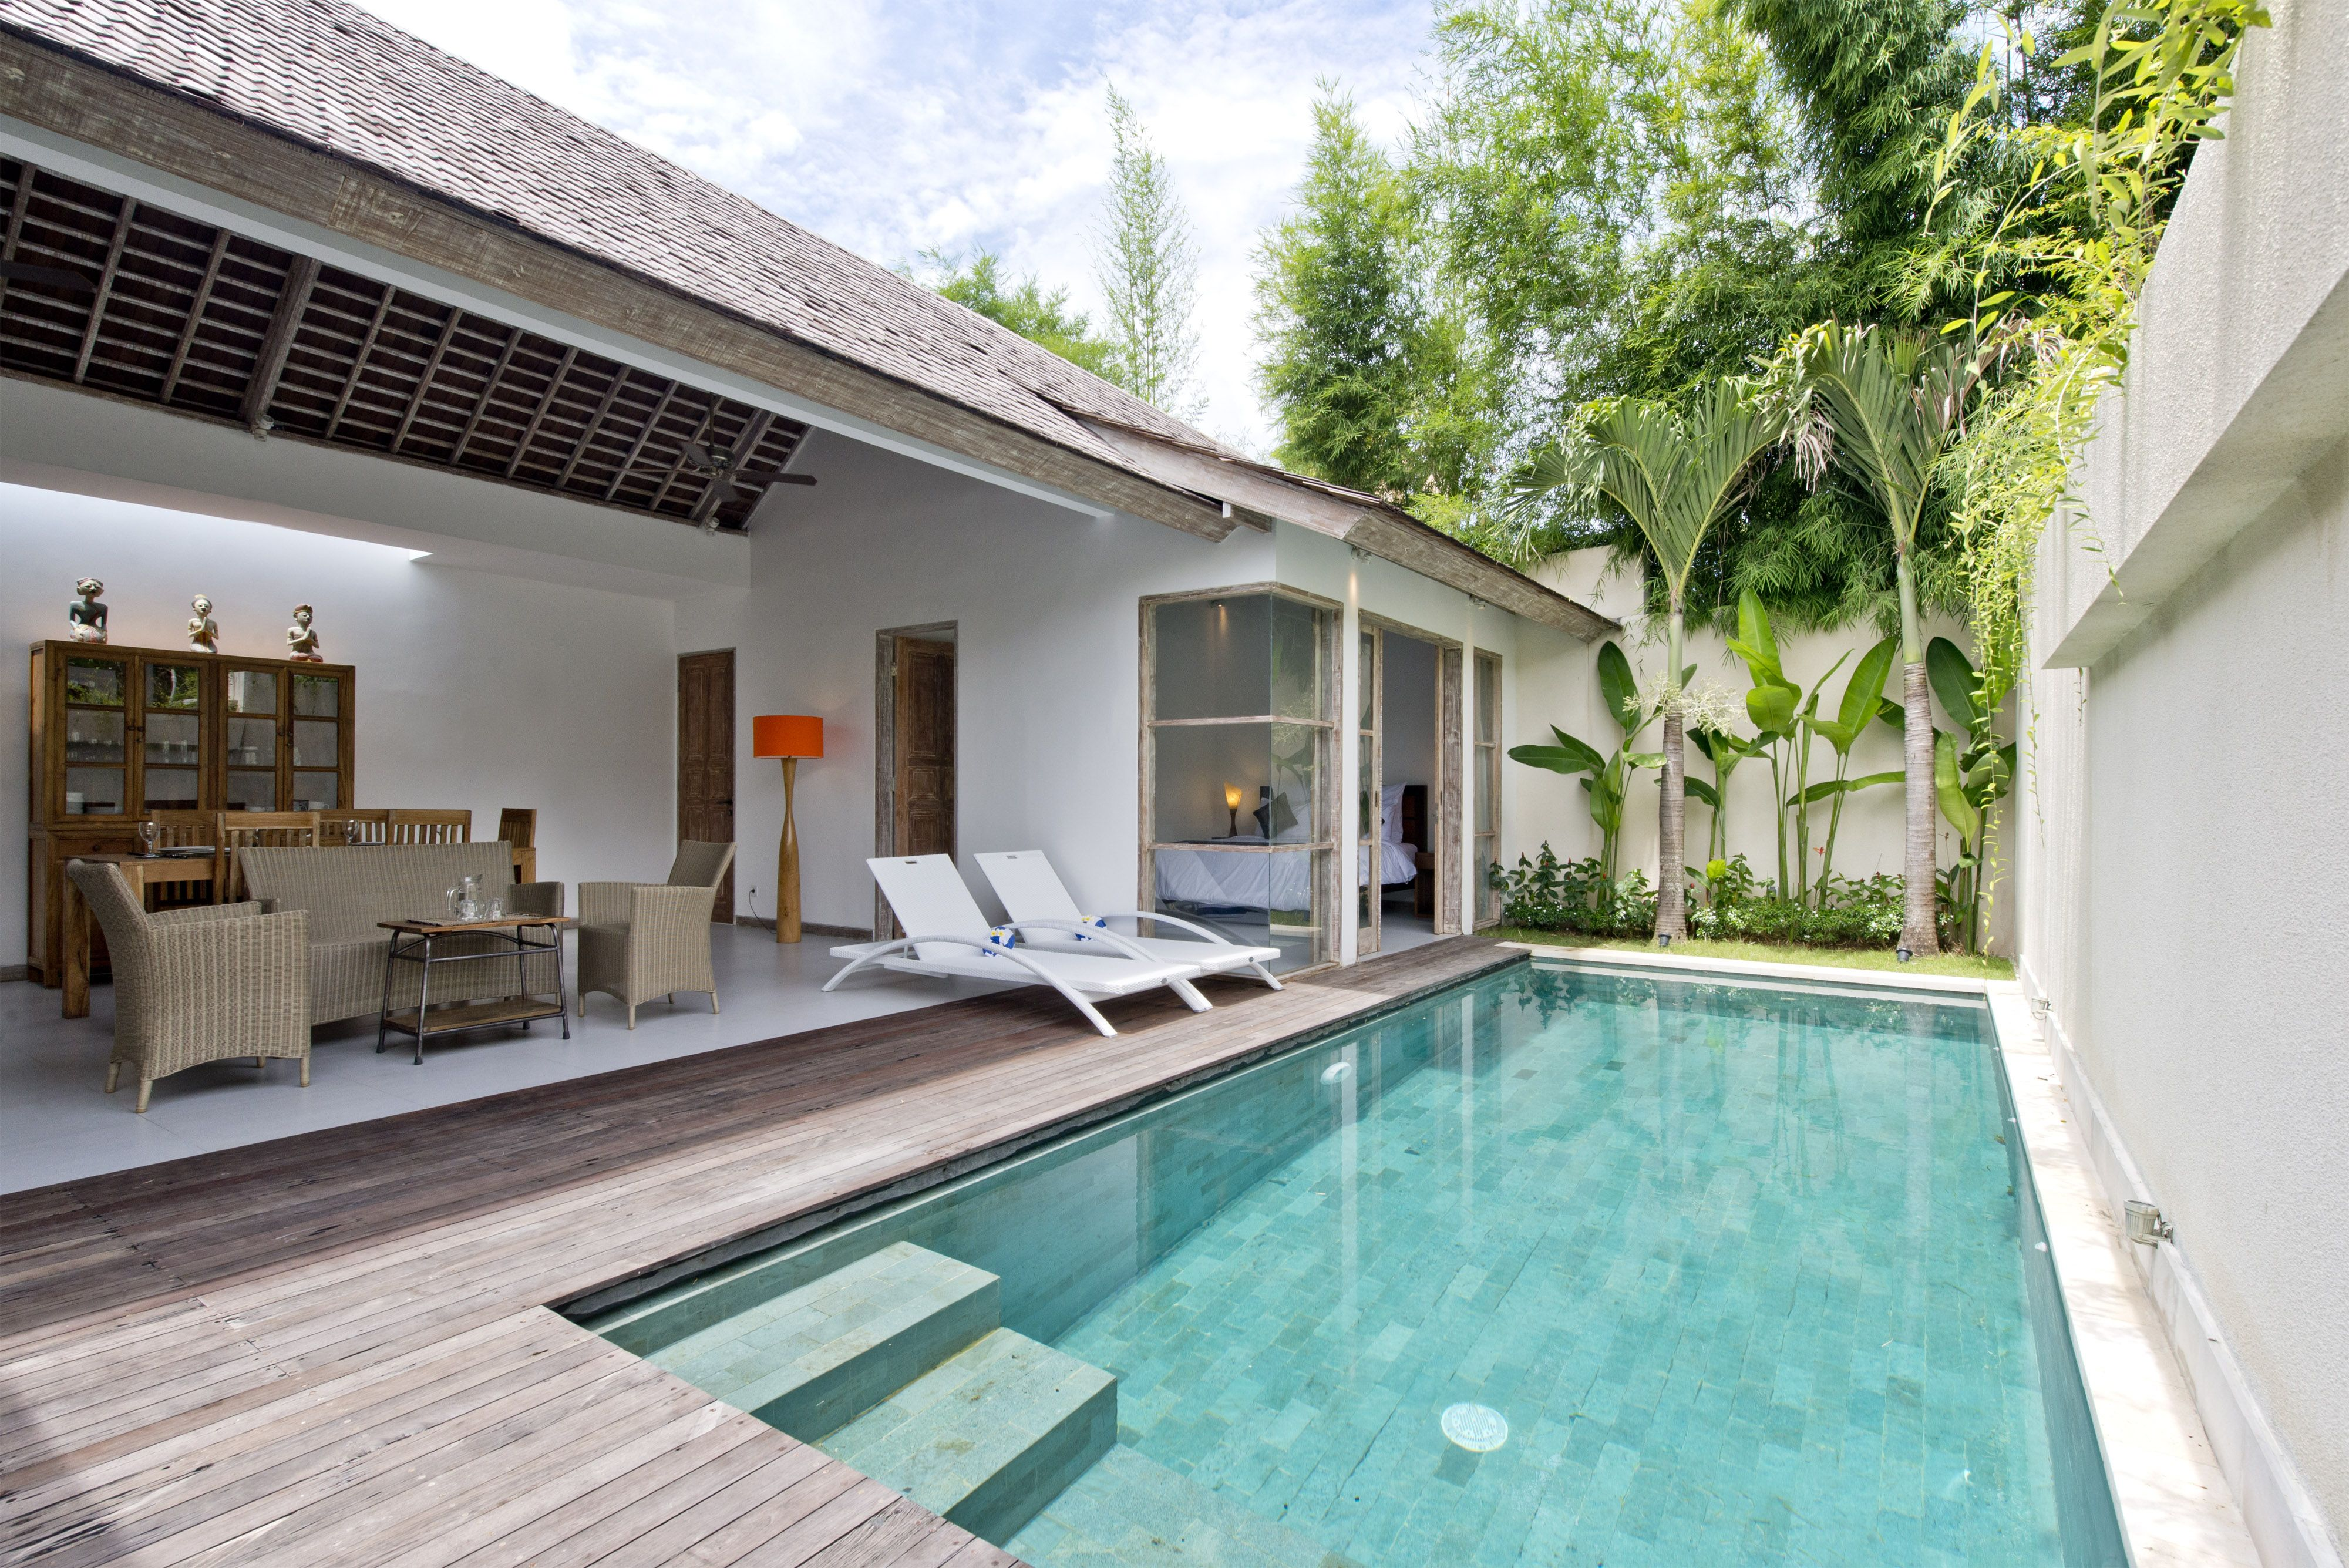 2 Bedroom Villa With A Private Swimming Pool At The Decks Bali Thedecksbali Villa Pool Bali Hol Villa With Private Pool Indoor Swimming Pools Resort Villa